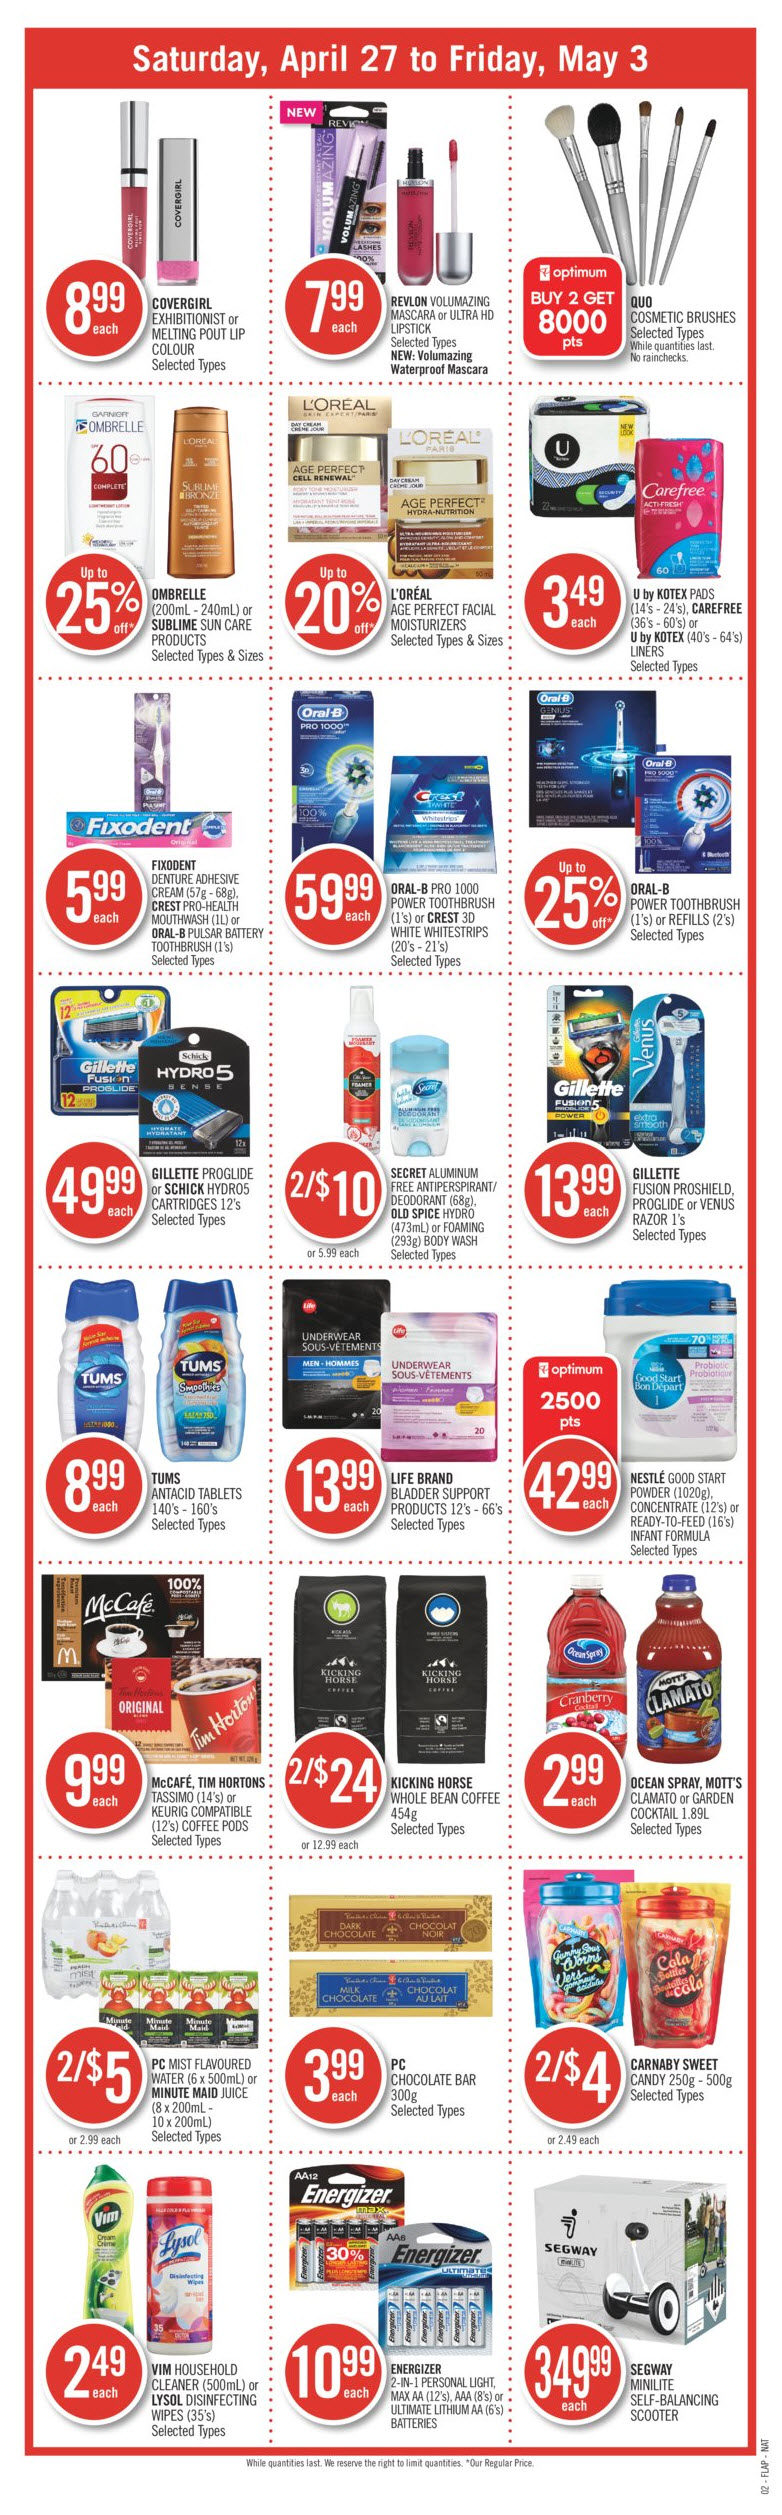 Shoppers Drug Mart Weekly Flyer Weekly Apr 27 May 3